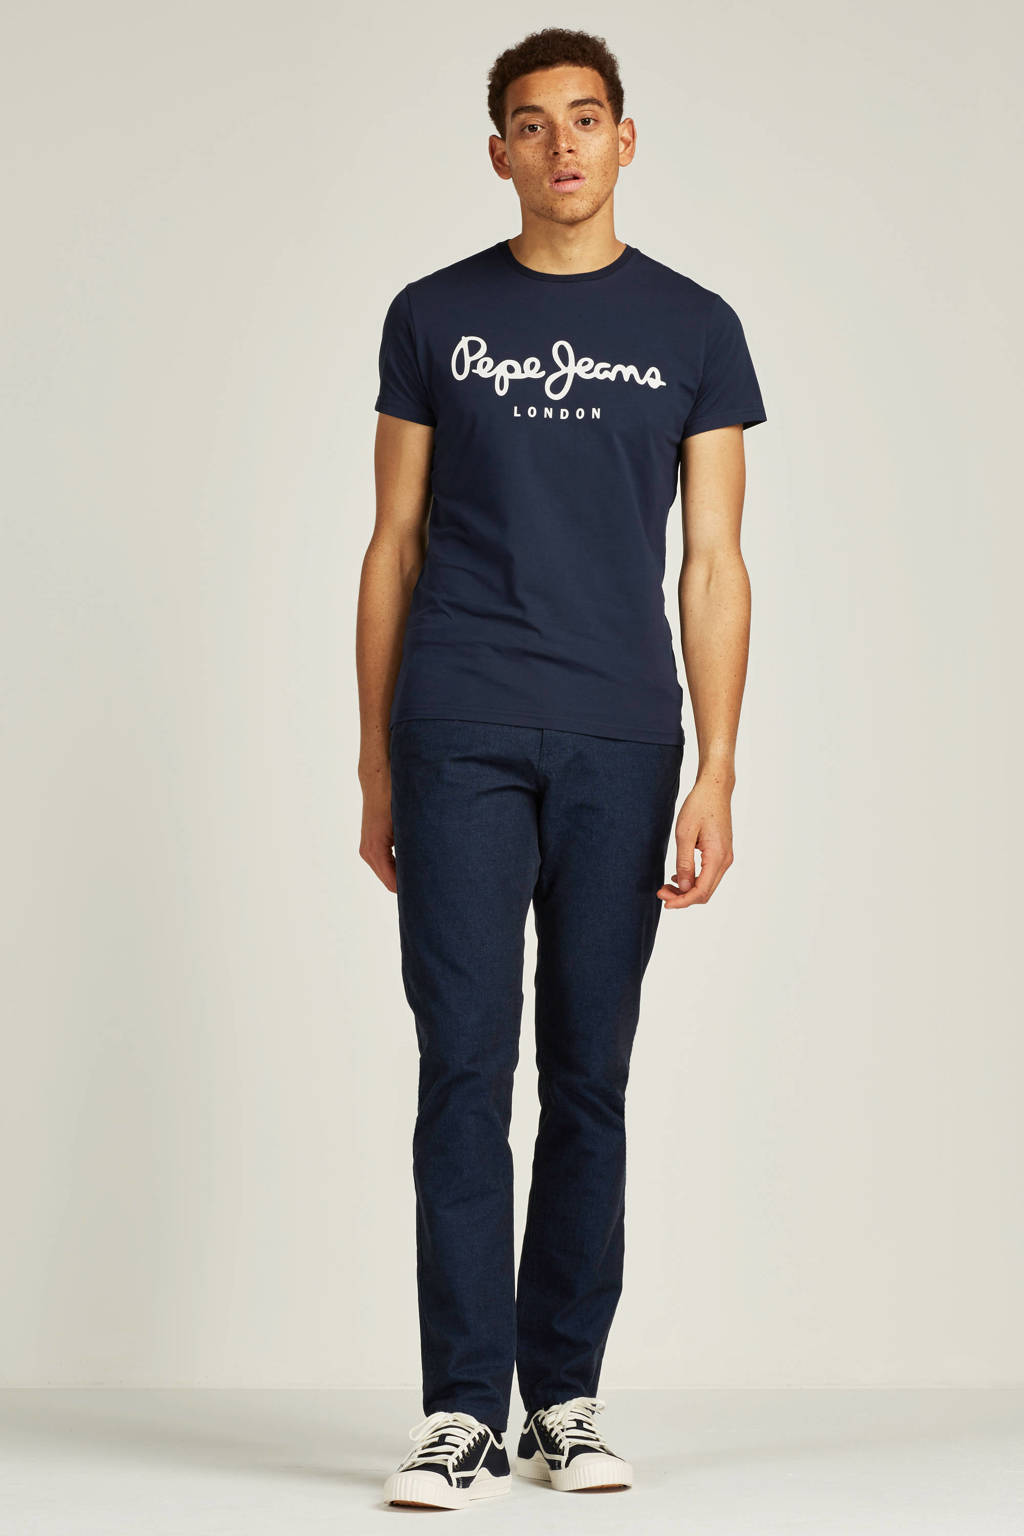 Pepe Jeans T-shirt, Donkerblauw/wit